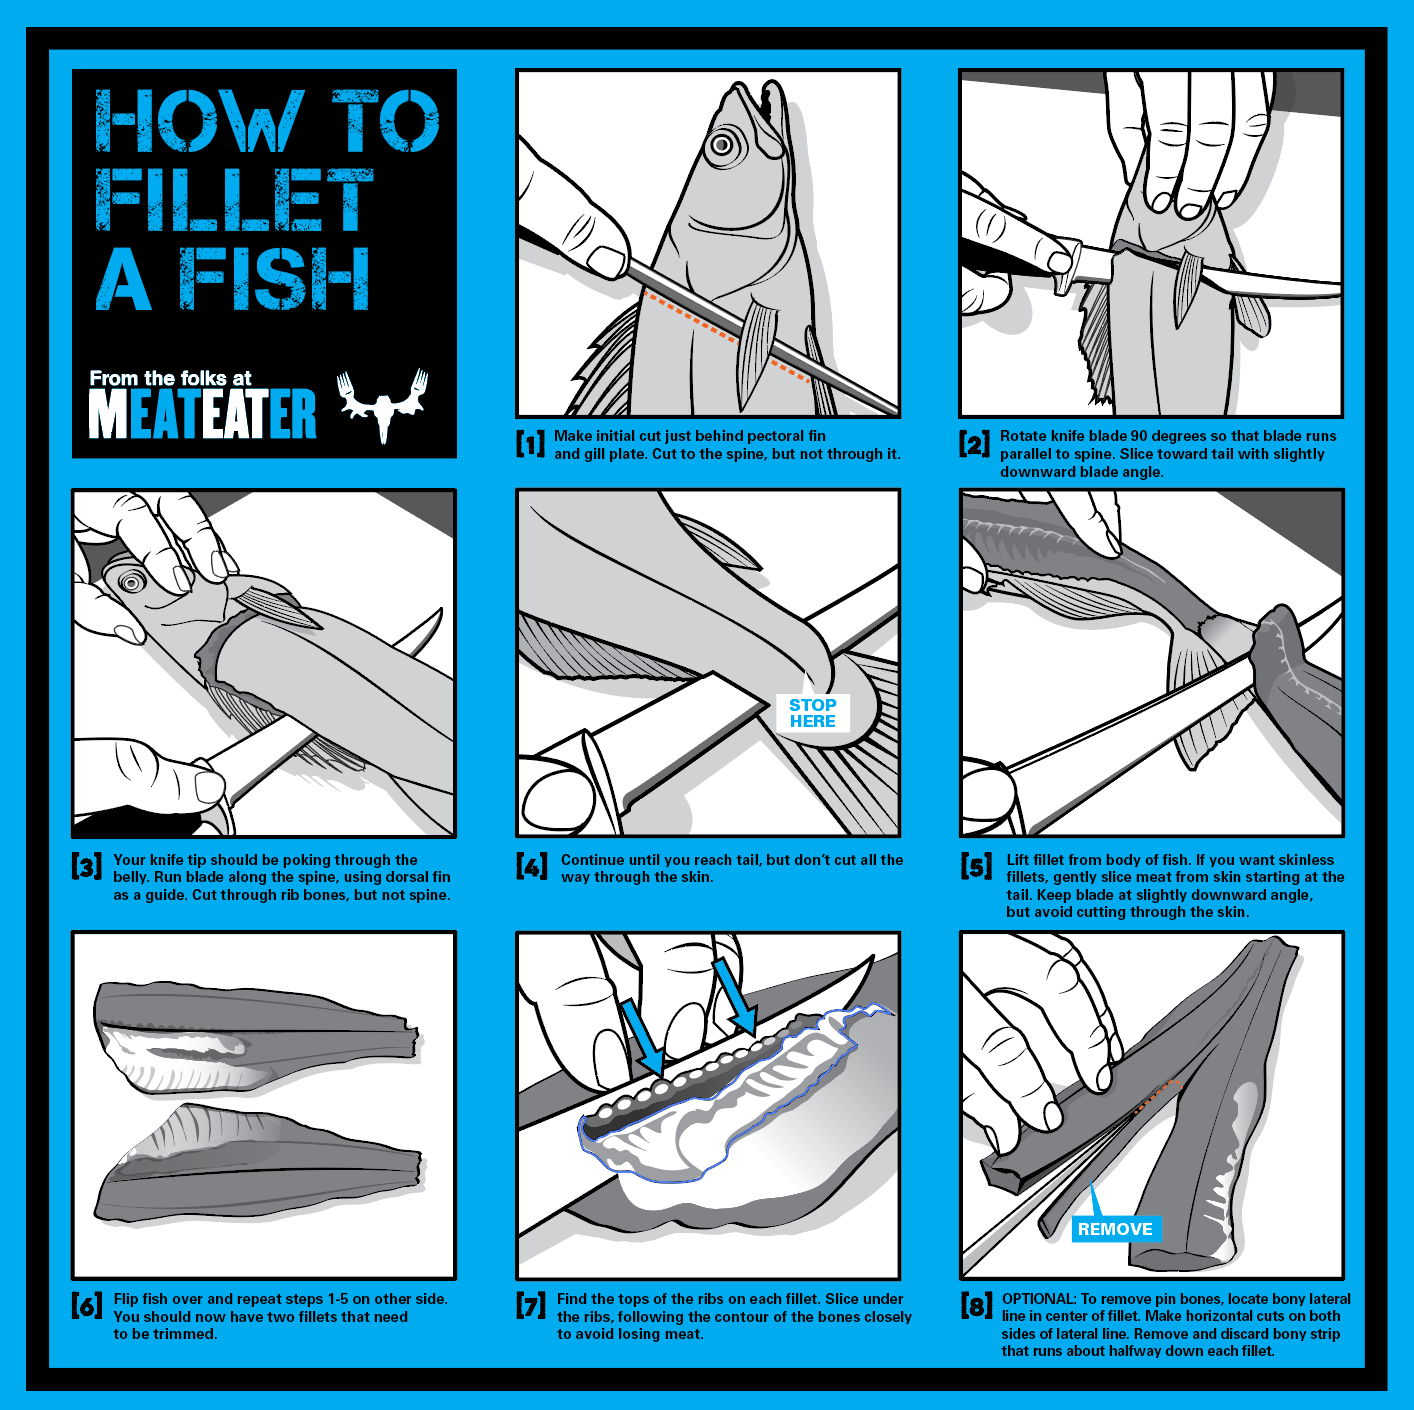 How to Fillet a Fish Bandana